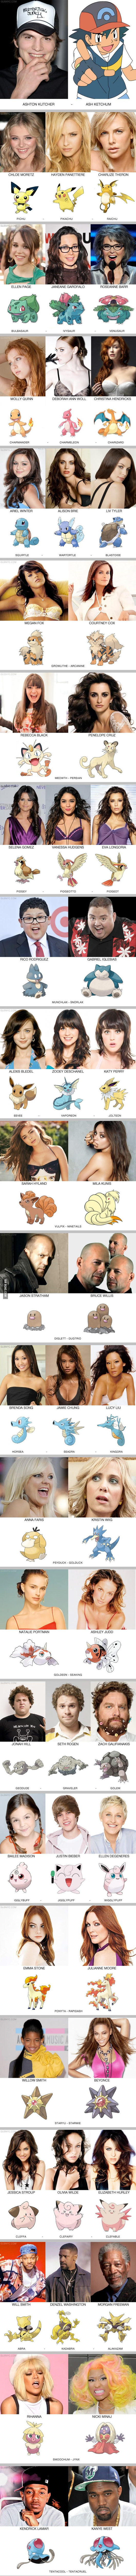 Lol pinning just for the jigglypuff evolution If Celebrities Are Pokémon, This Is How They Would Evolve